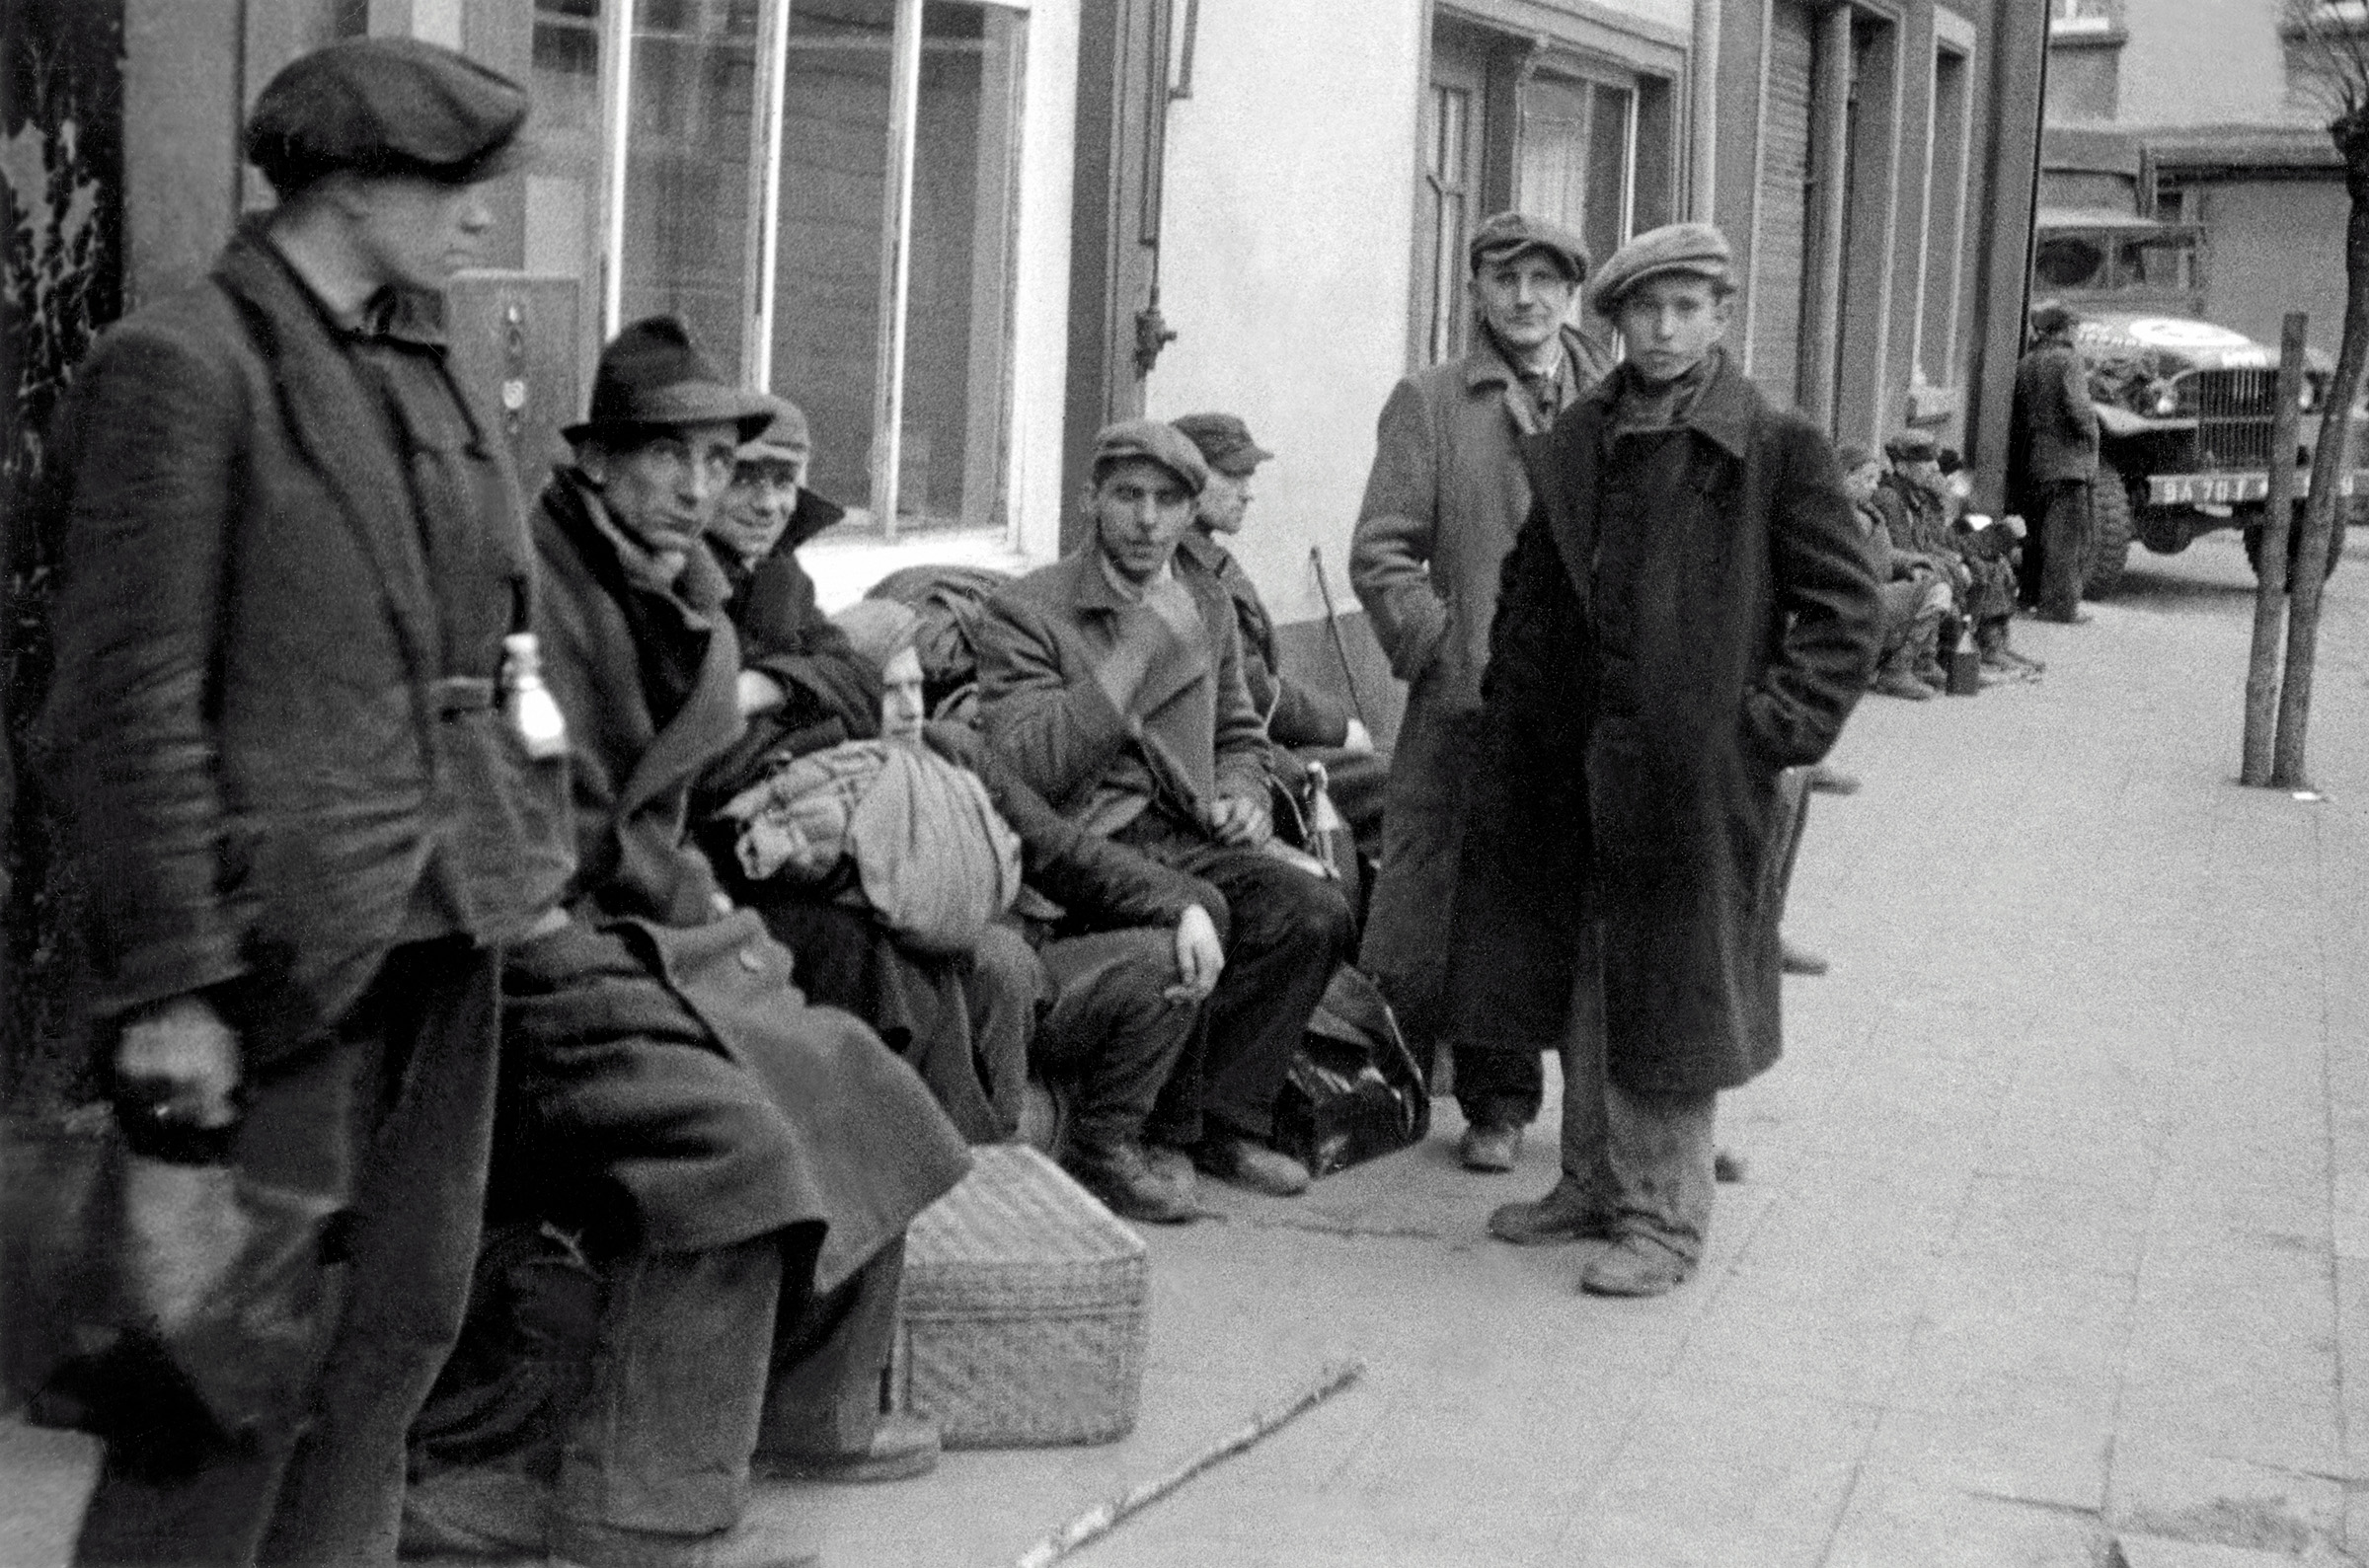 A group of Displaced Persons (DPs), in Barby, Germany on April 12, 1945.